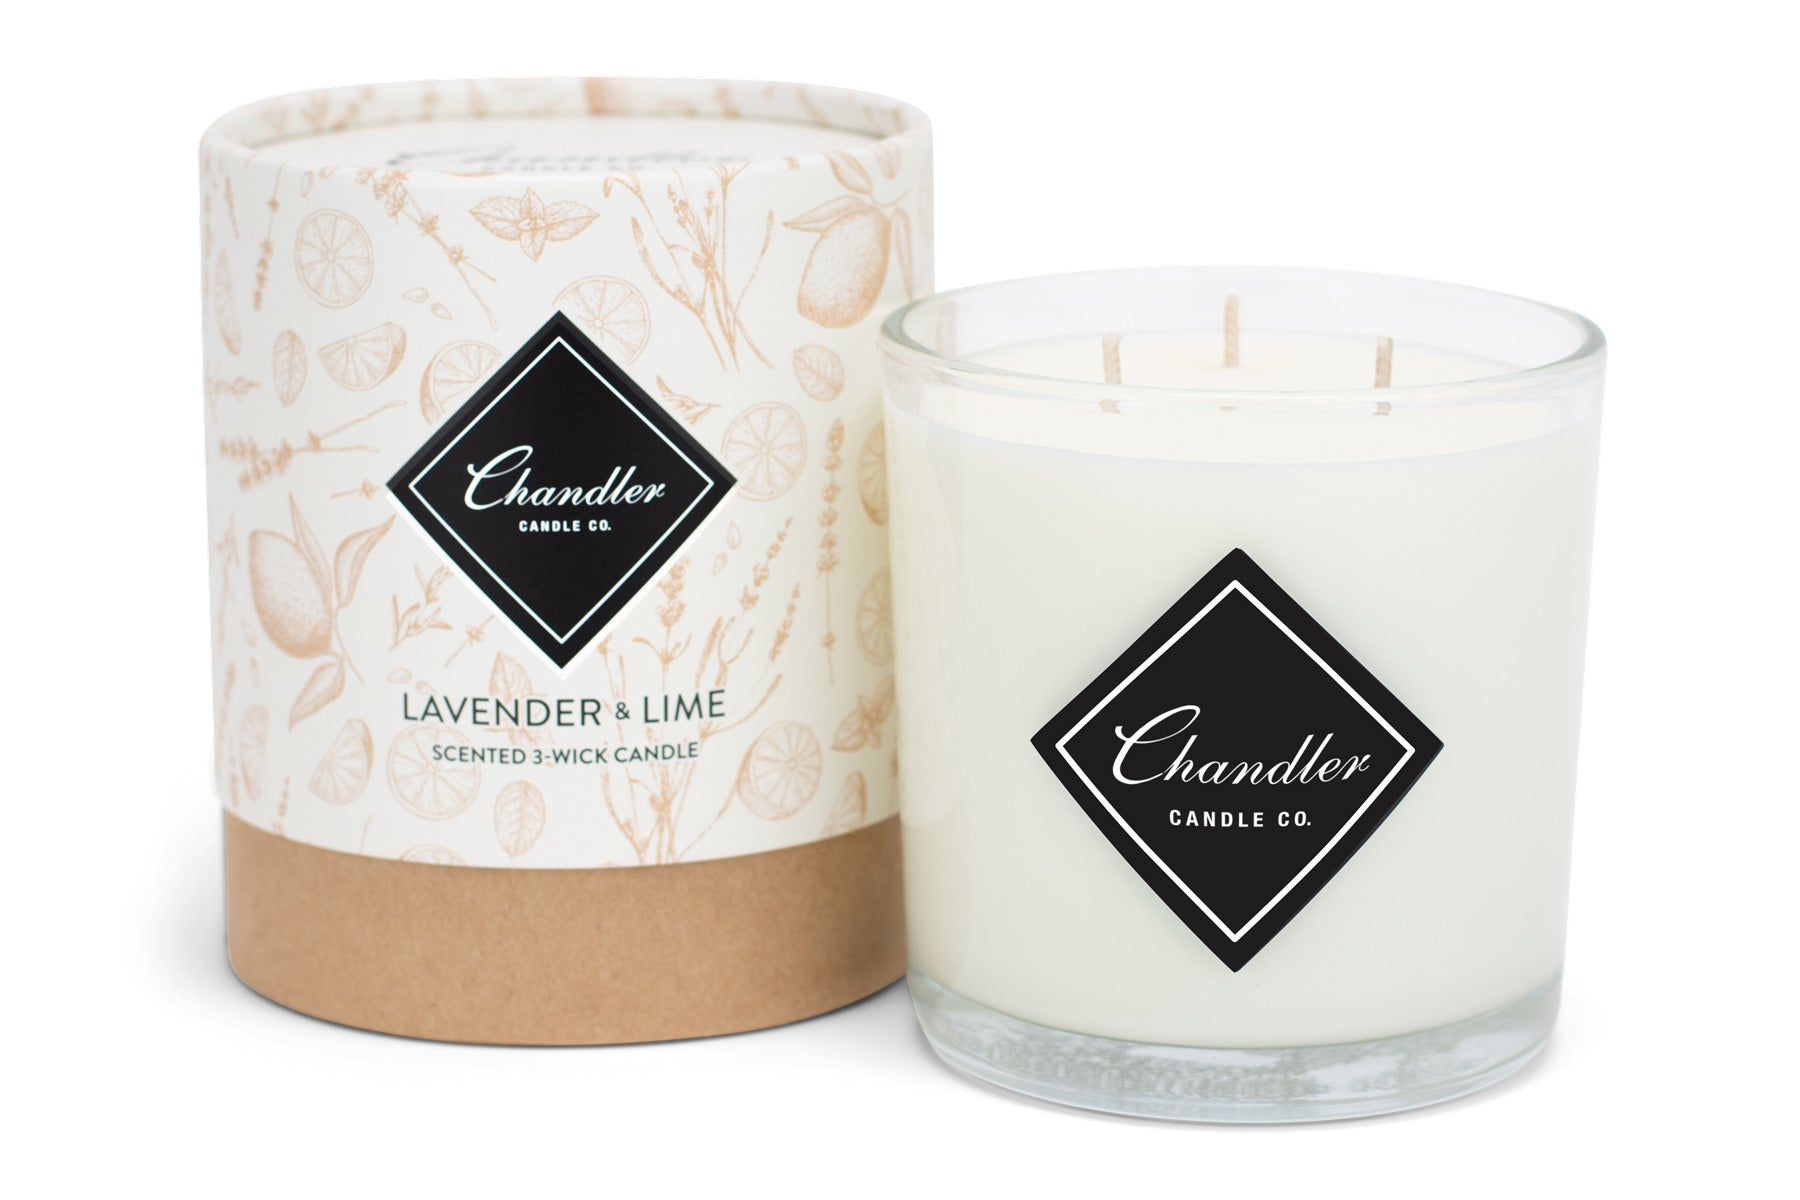 Large 3-Wick Lavender & Lime Scented Candle